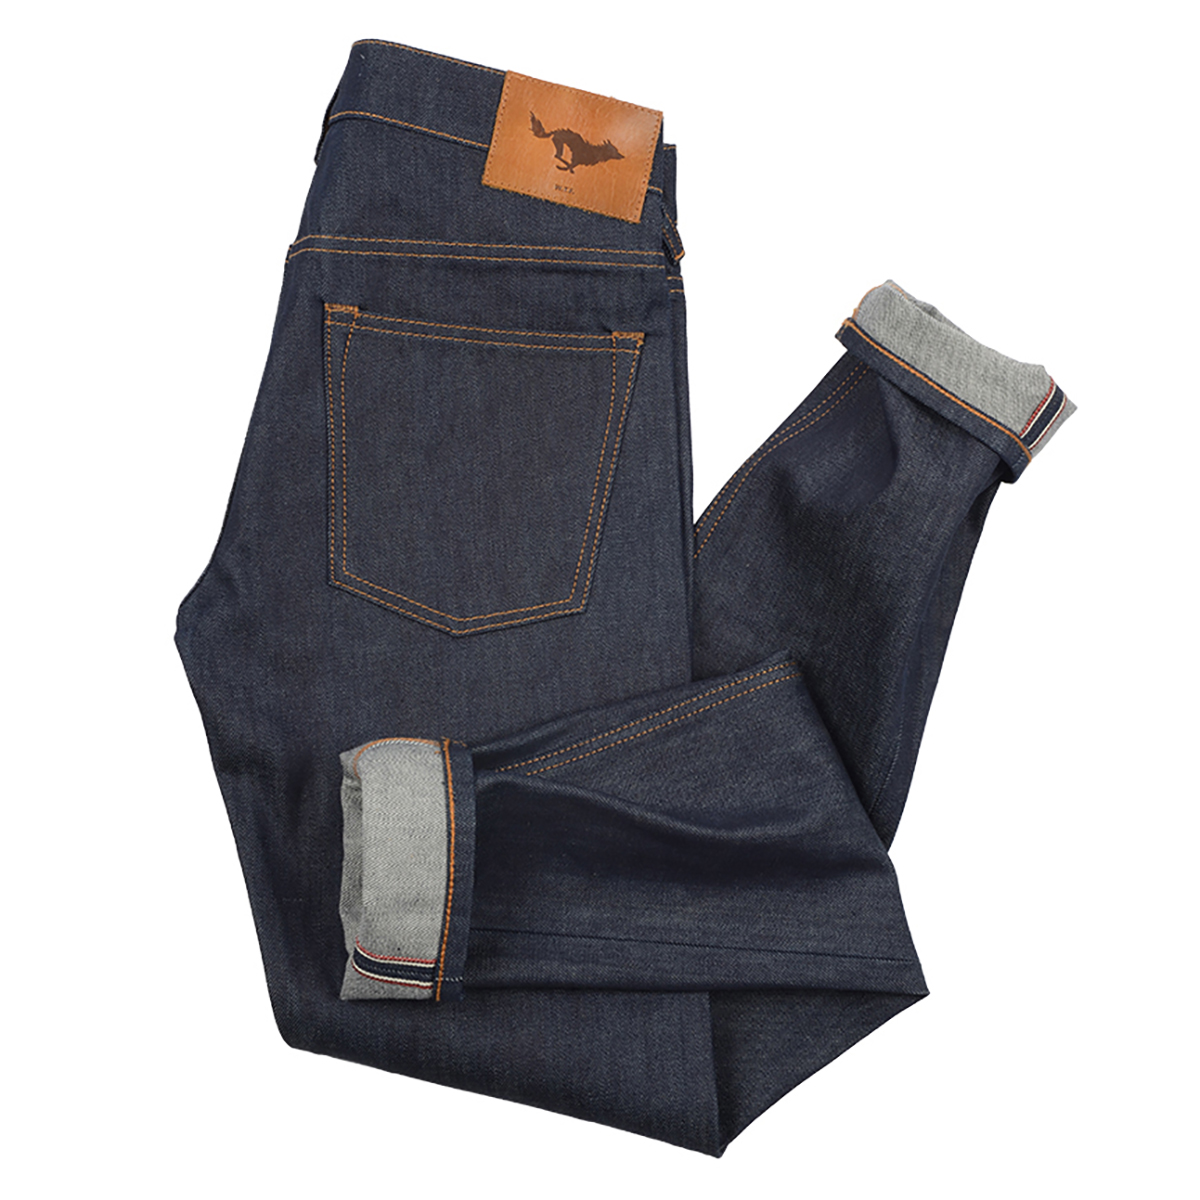 ximpostor-skinny-raw-selvedge-denim-indigo.jpg.pagespeed.ic.GJY4wMEzfz